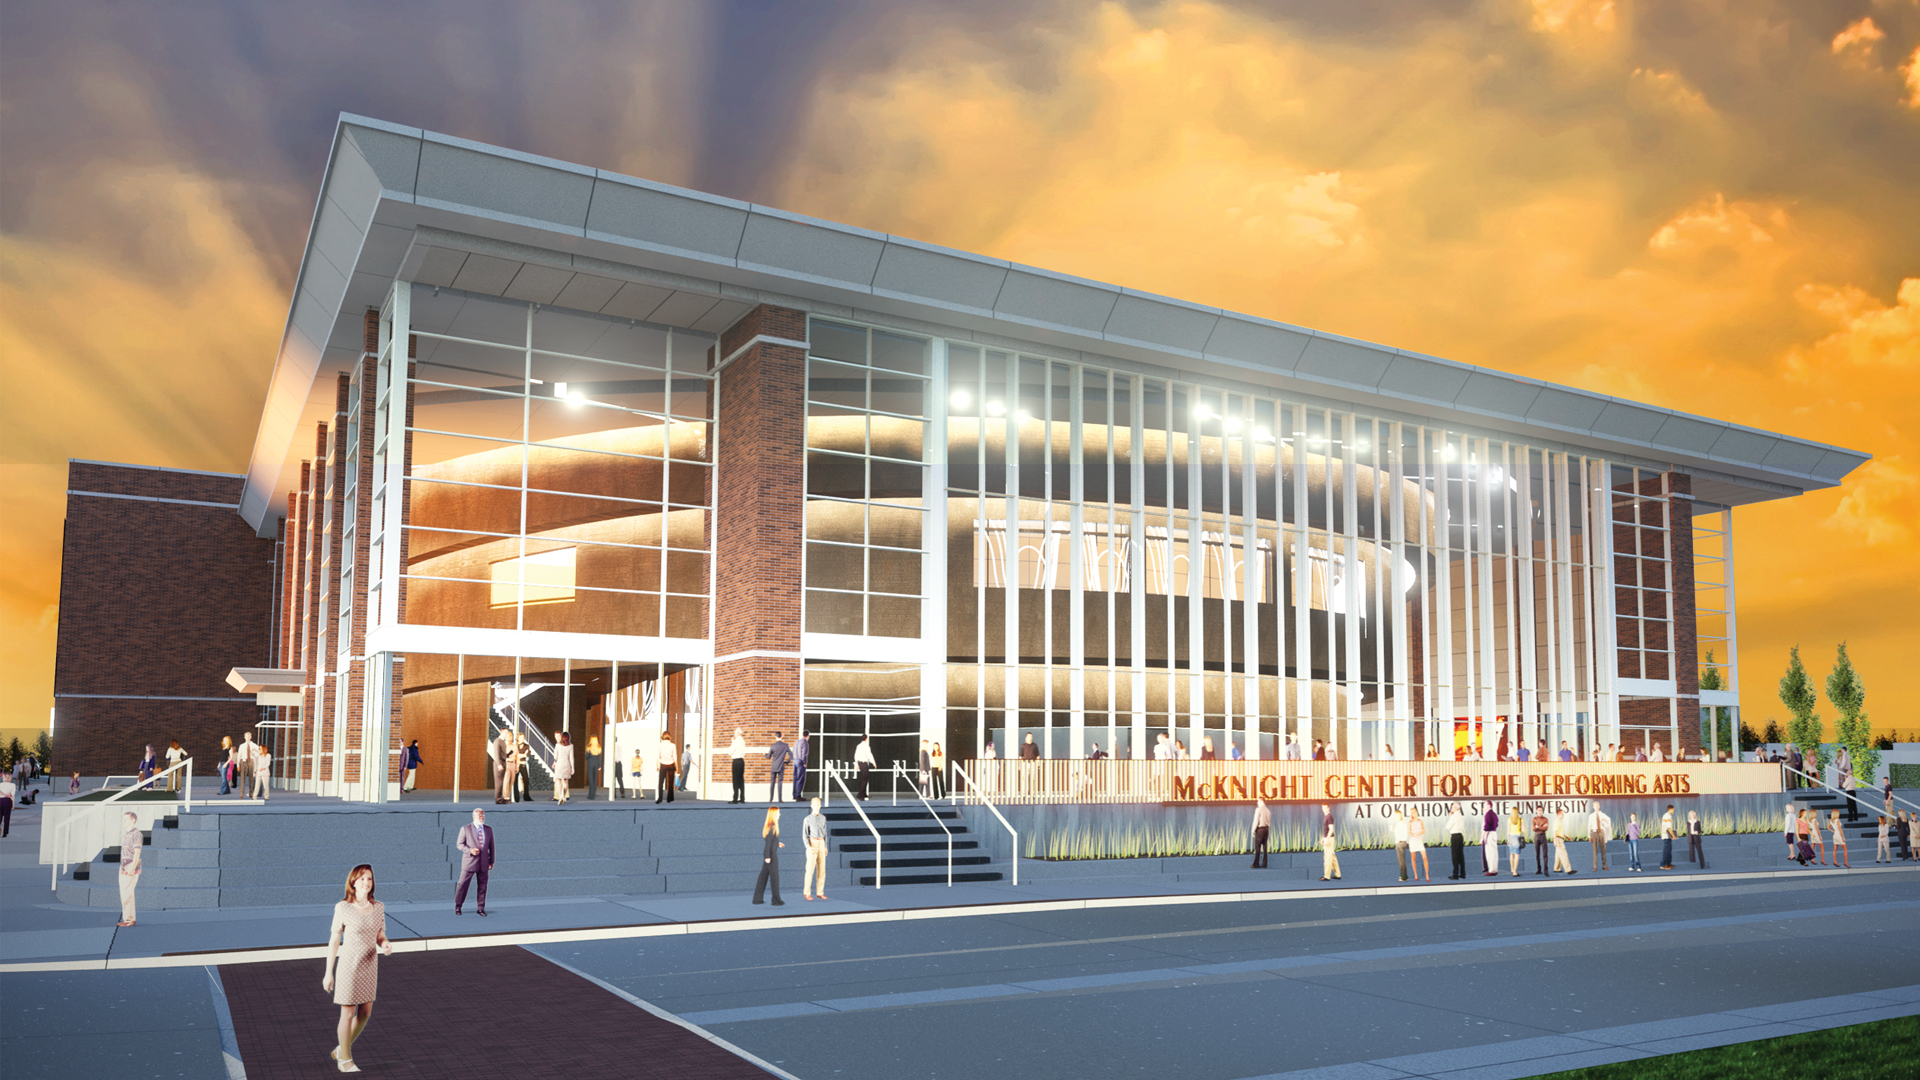 OSU Announces New Performing Arts Center